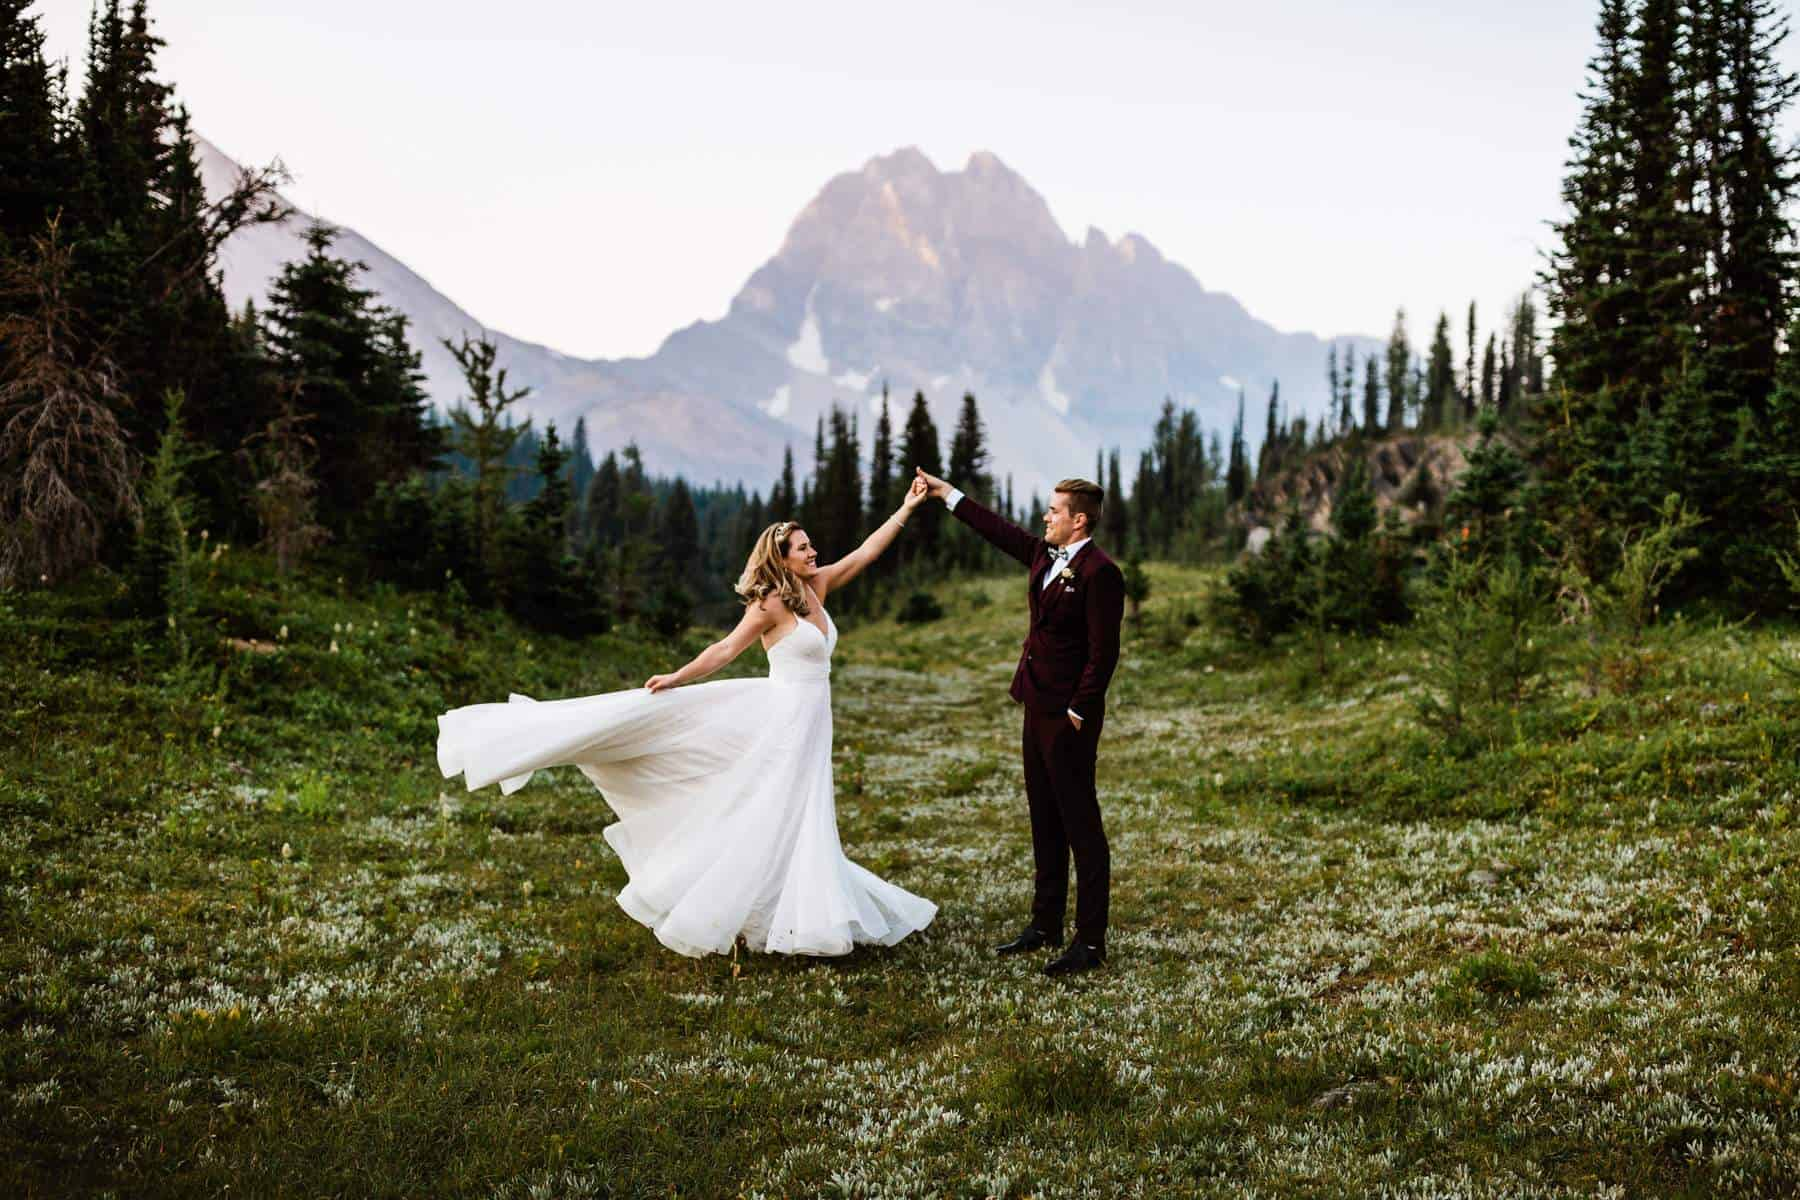 Bride and groom are dancing in the middle of nature with a stunning mountain in the background